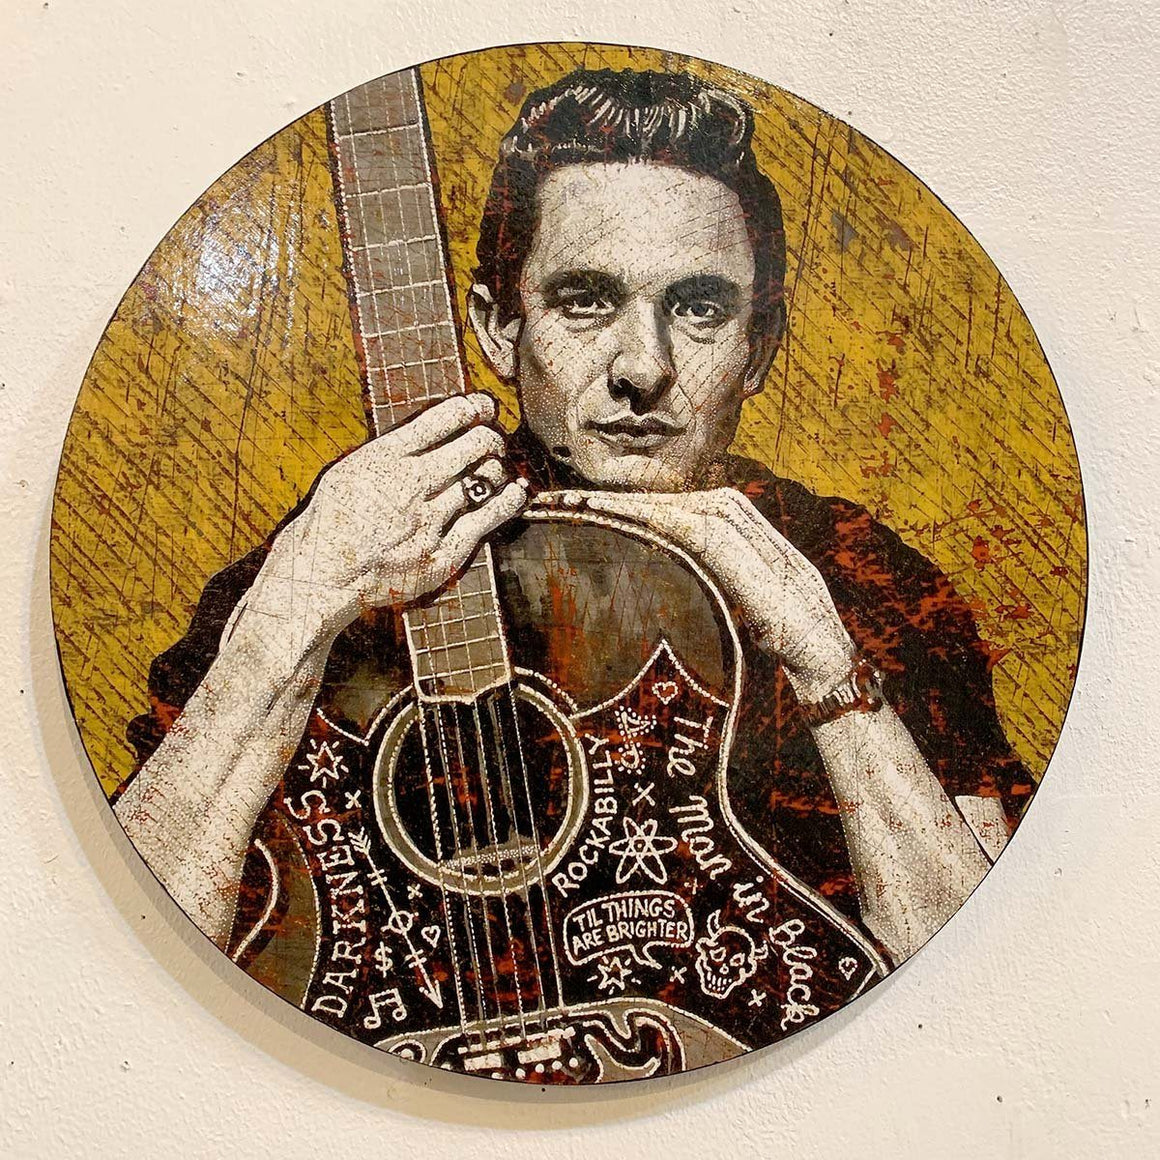 Cash - Man In Black - Round - Jon Langford - Yard Dog Art